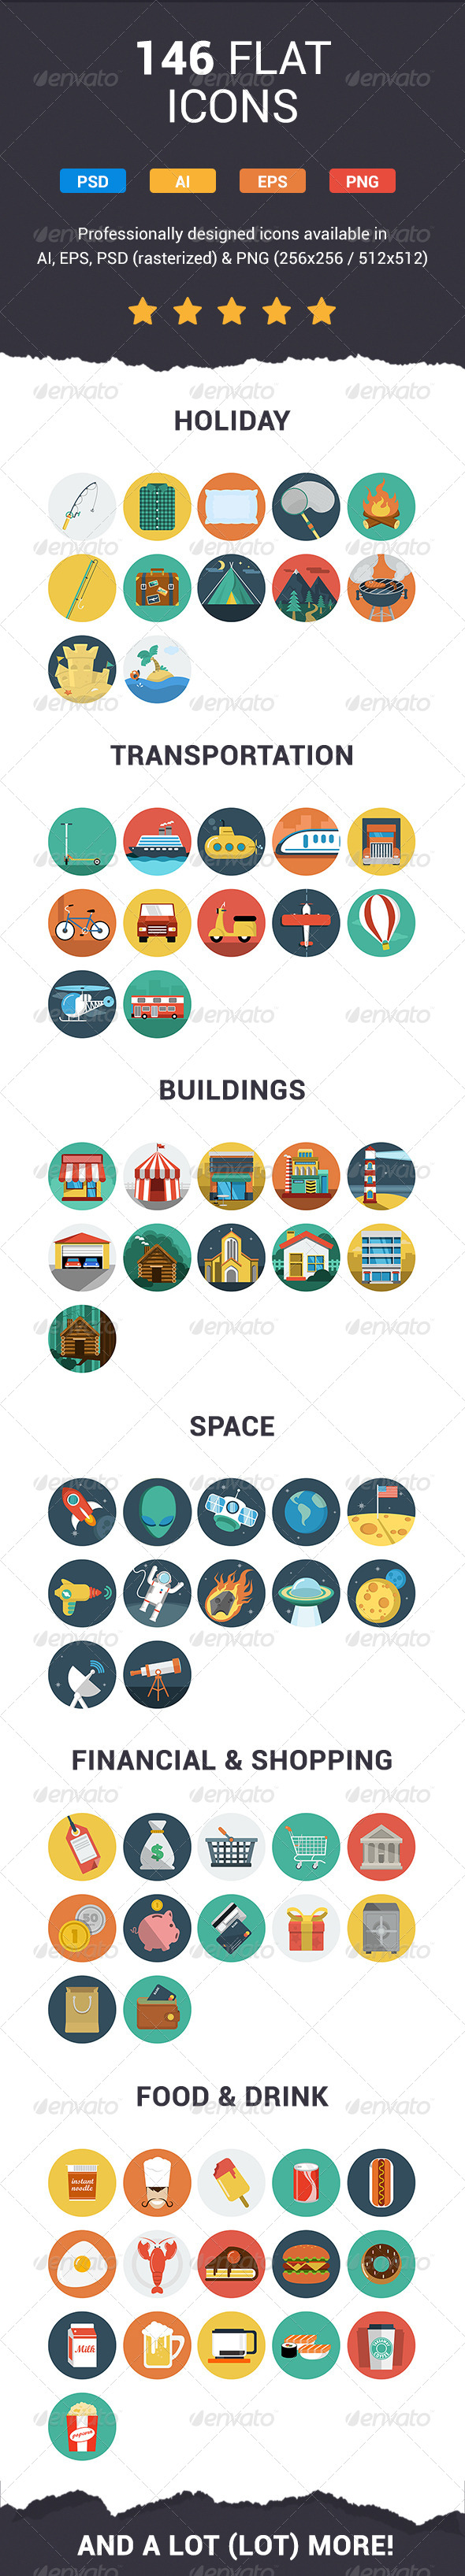 GraphicRiver 146 Flat Icons 6504697